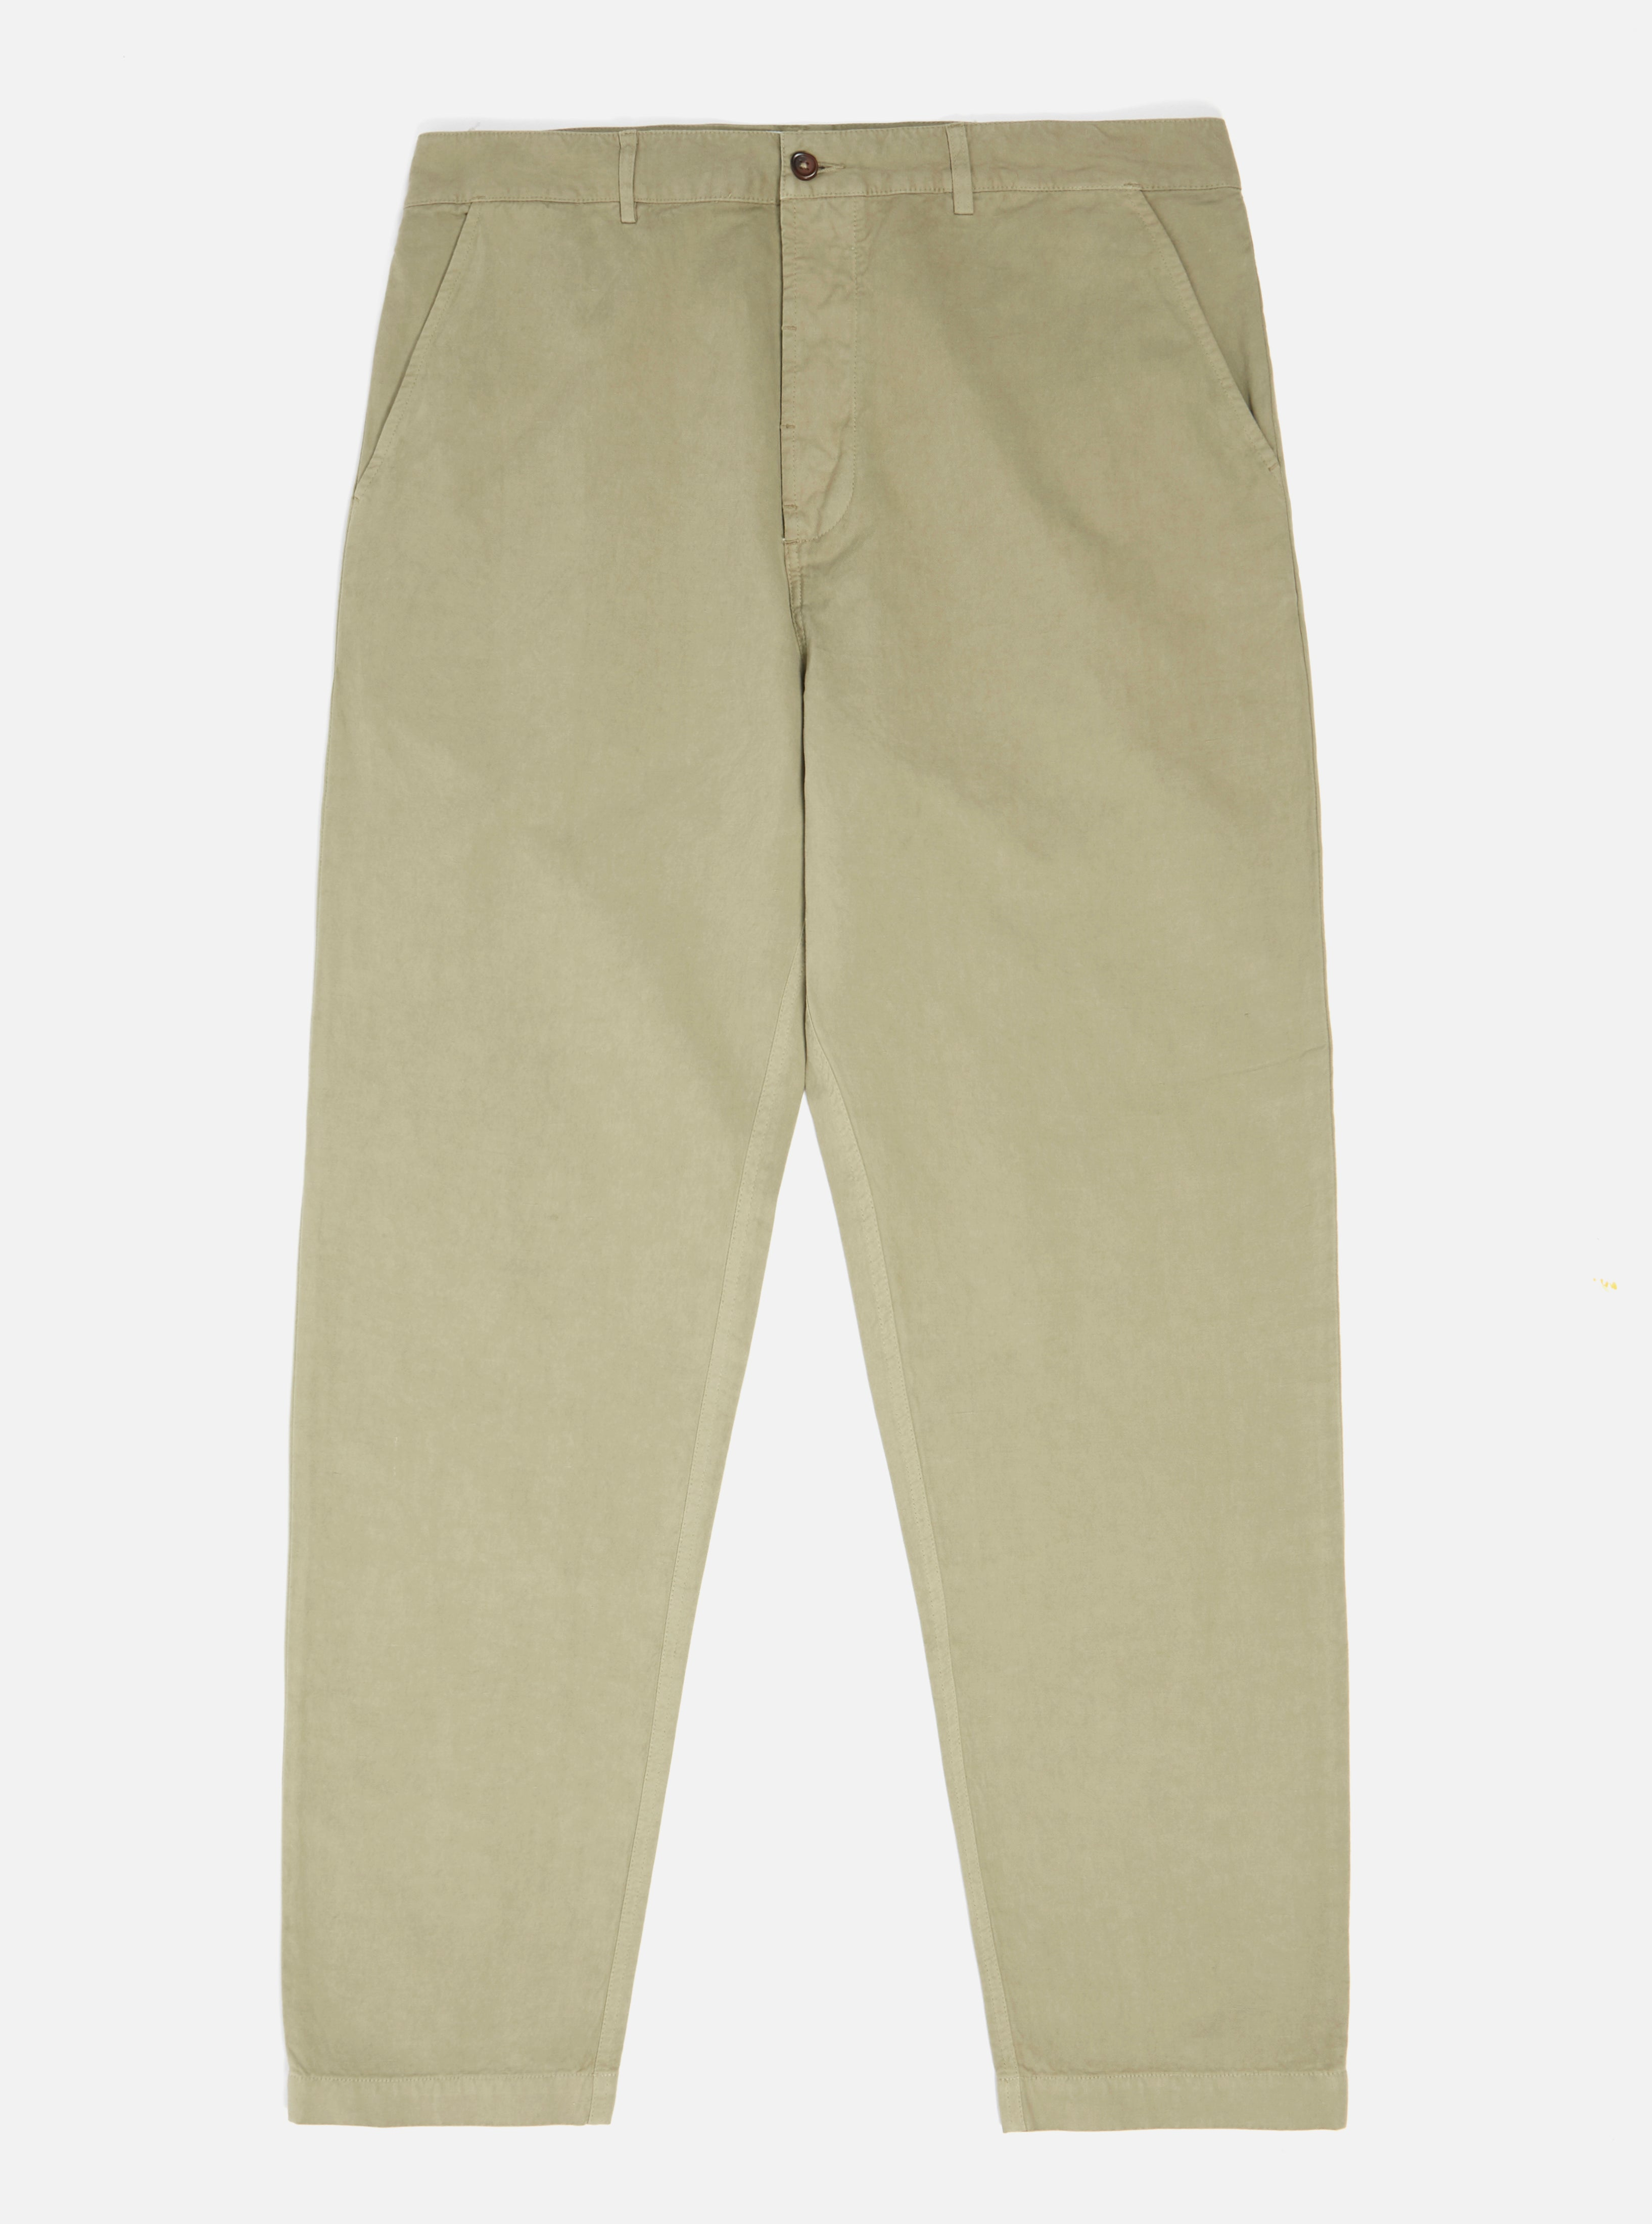 Universal Works Military Chino in Elm Linen Cotton